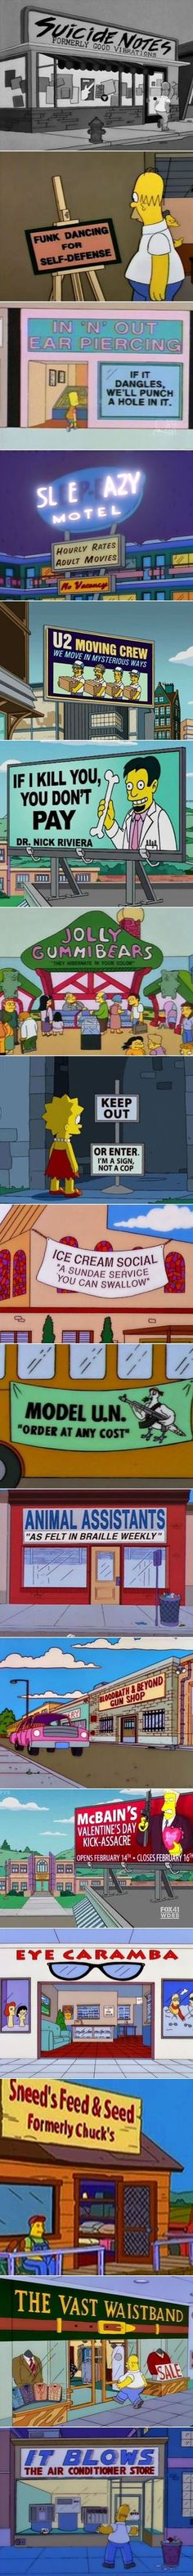 """Signs from The Simpsons...I'm still amazed that """"Sneed's Seed and Feed (Formerly Chuck's)"""" made it past the censors."""